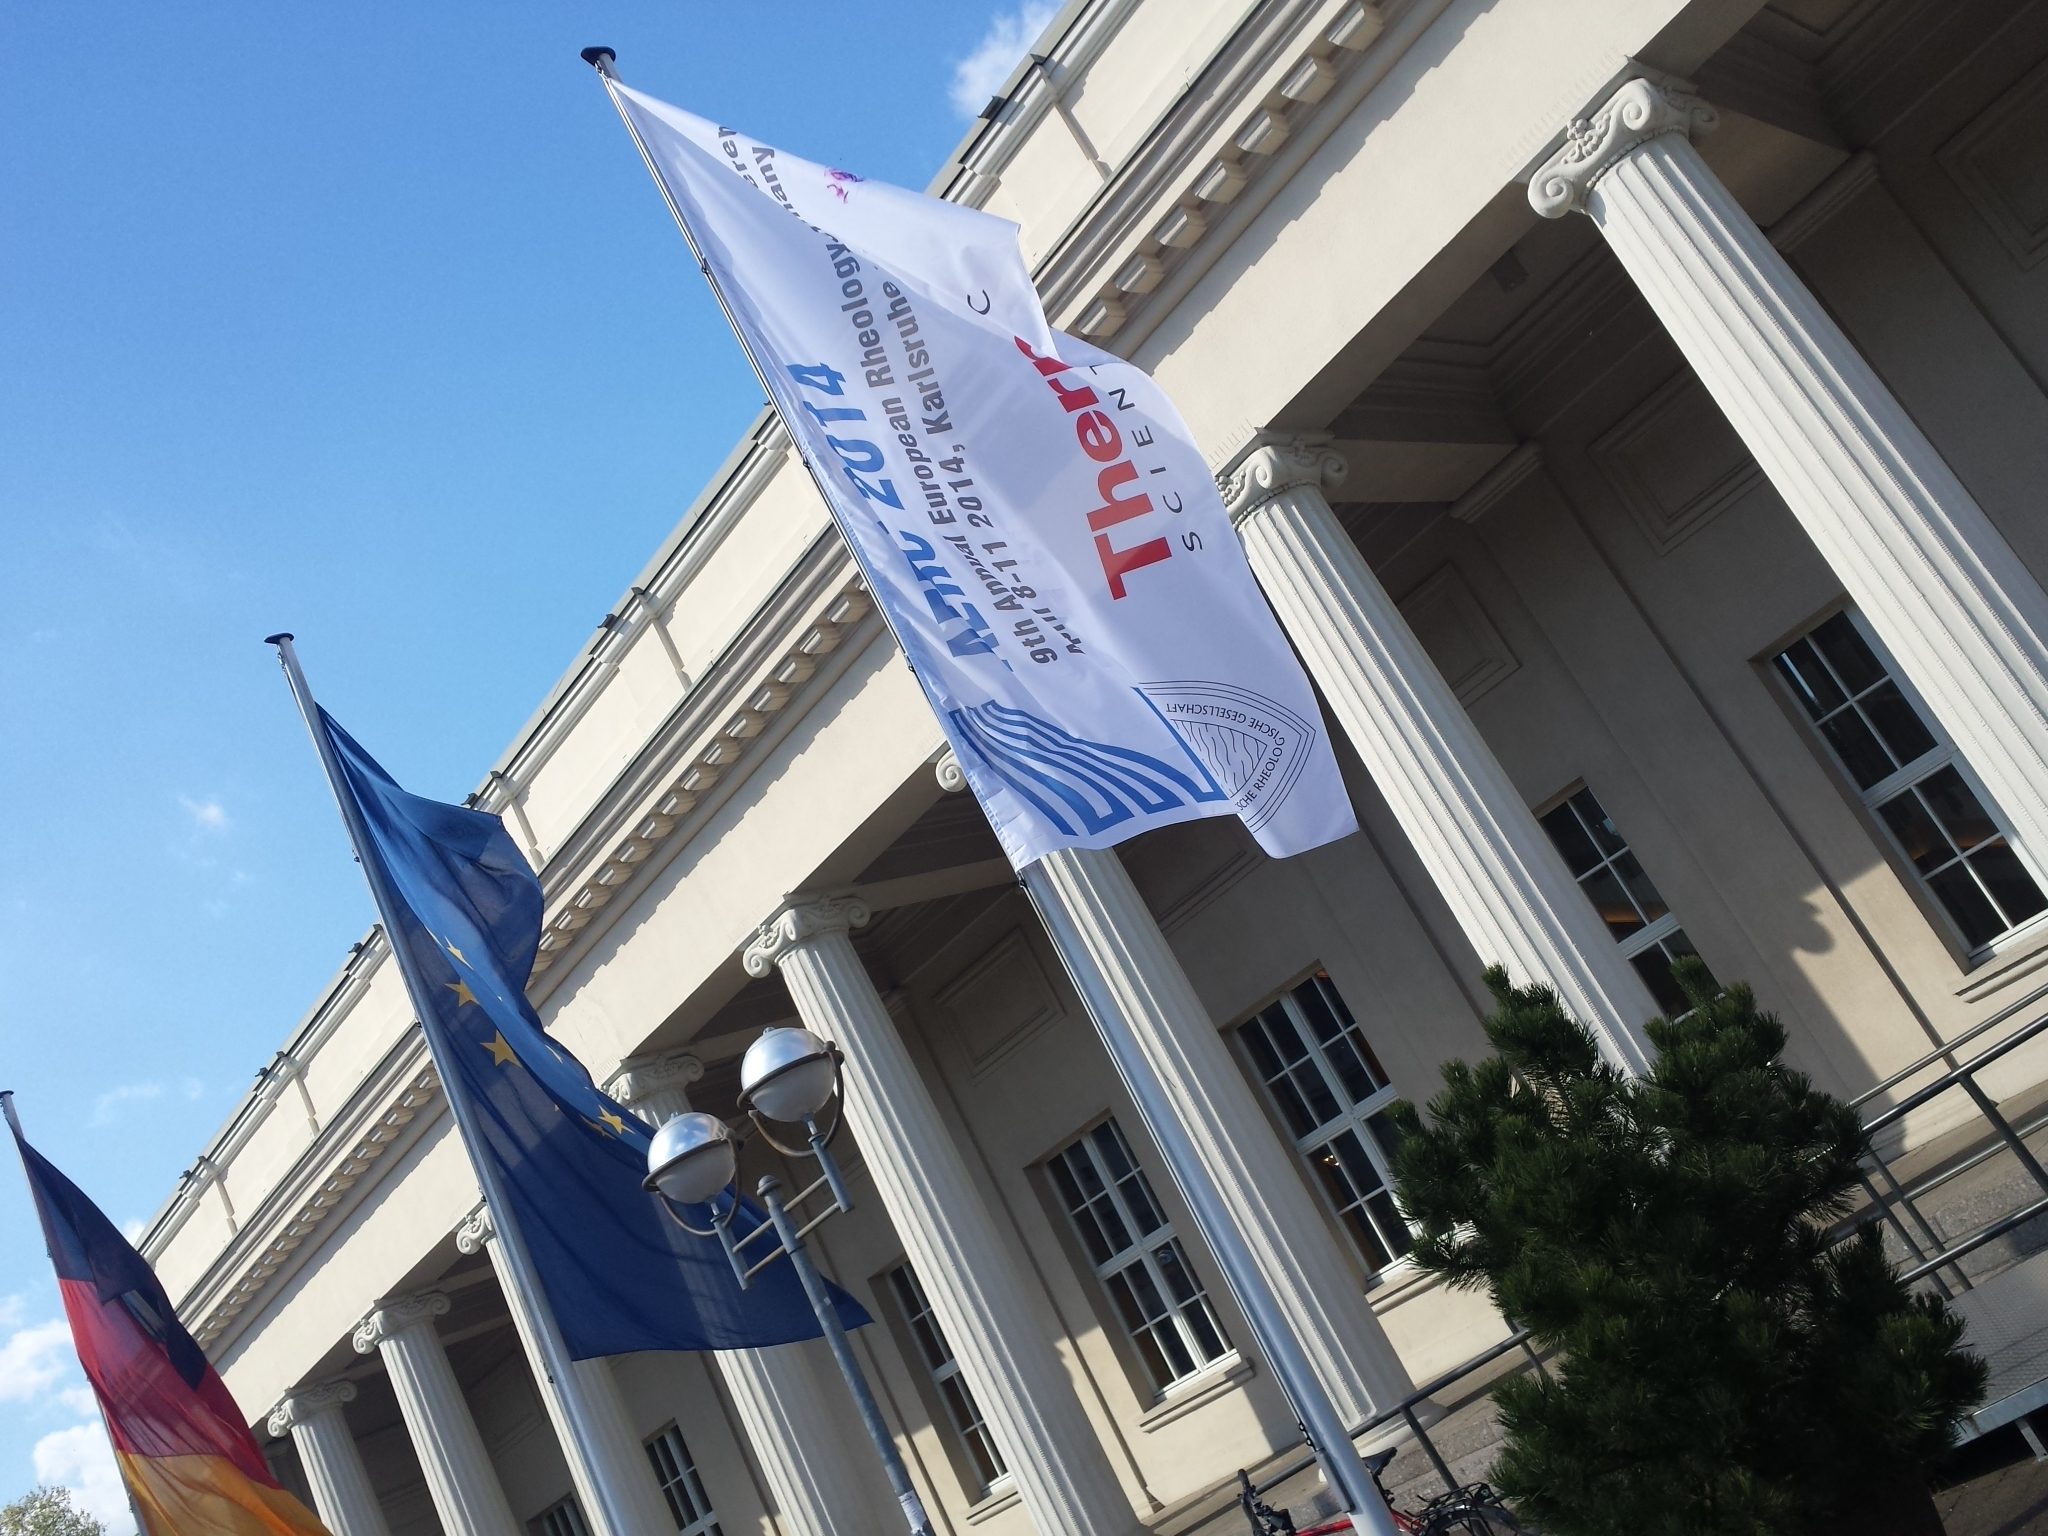 AERC 2014 was held at the magnificent Karlsruhe conference centre